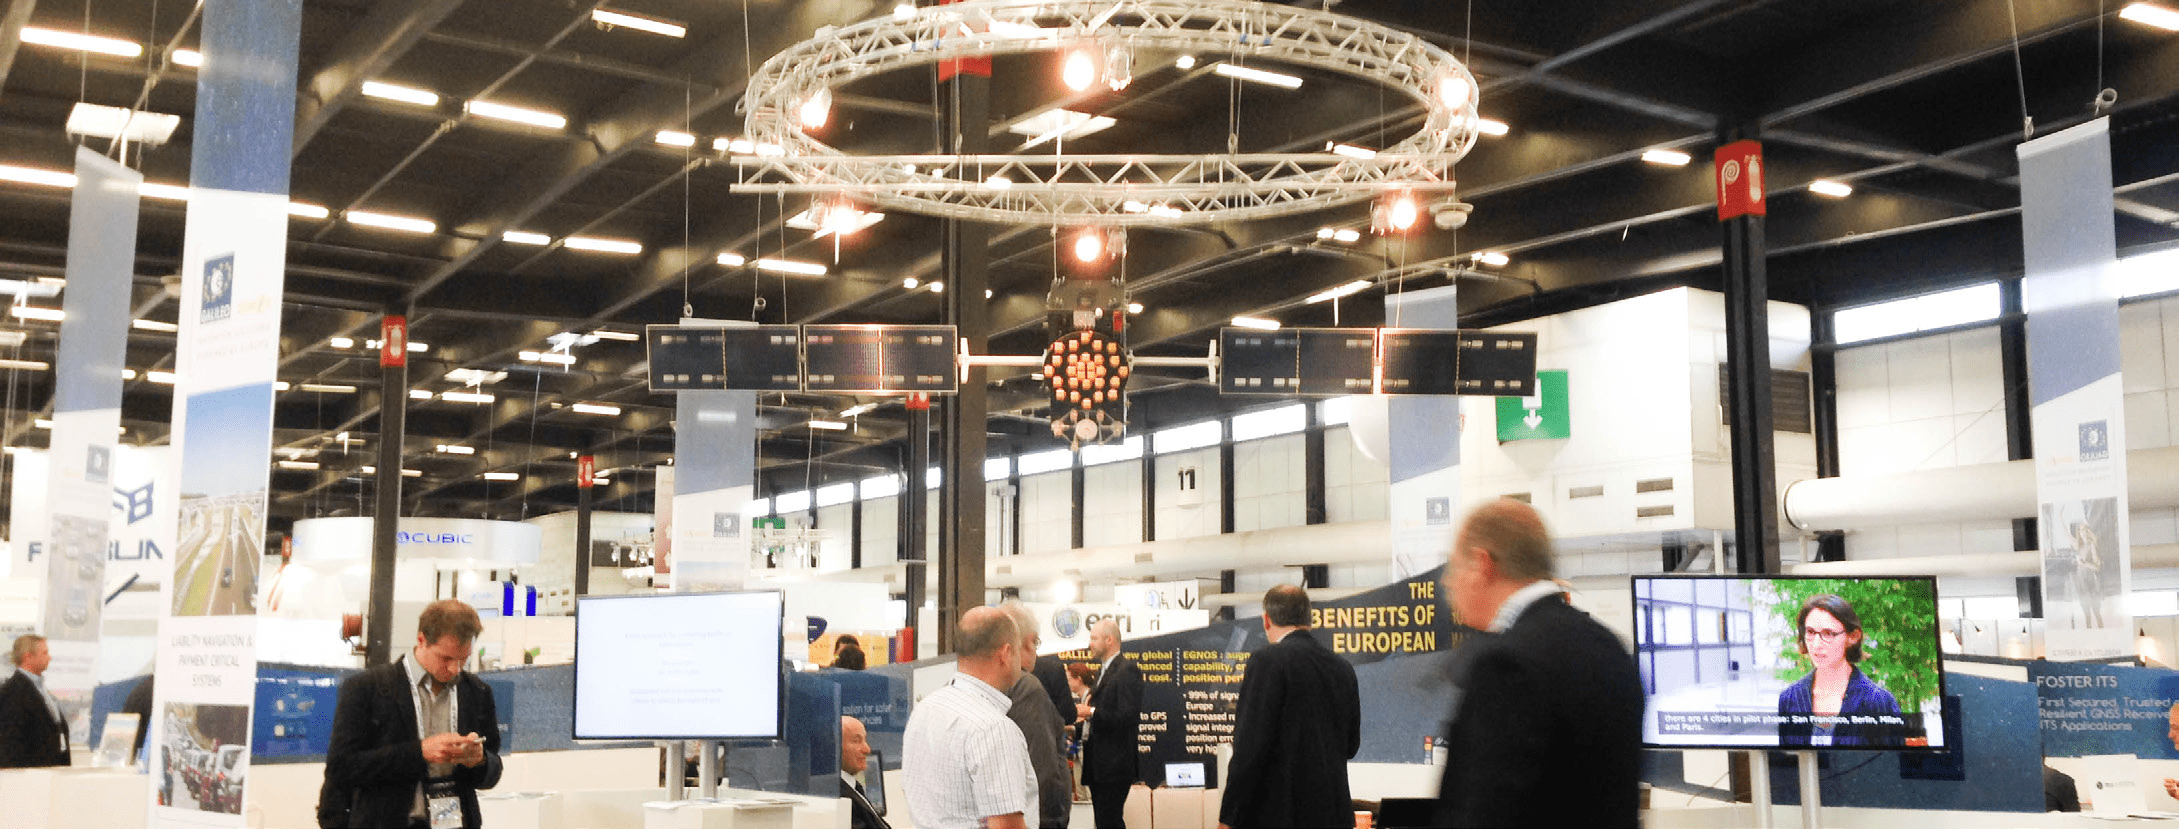 Jupiter presents the European GNSS Village